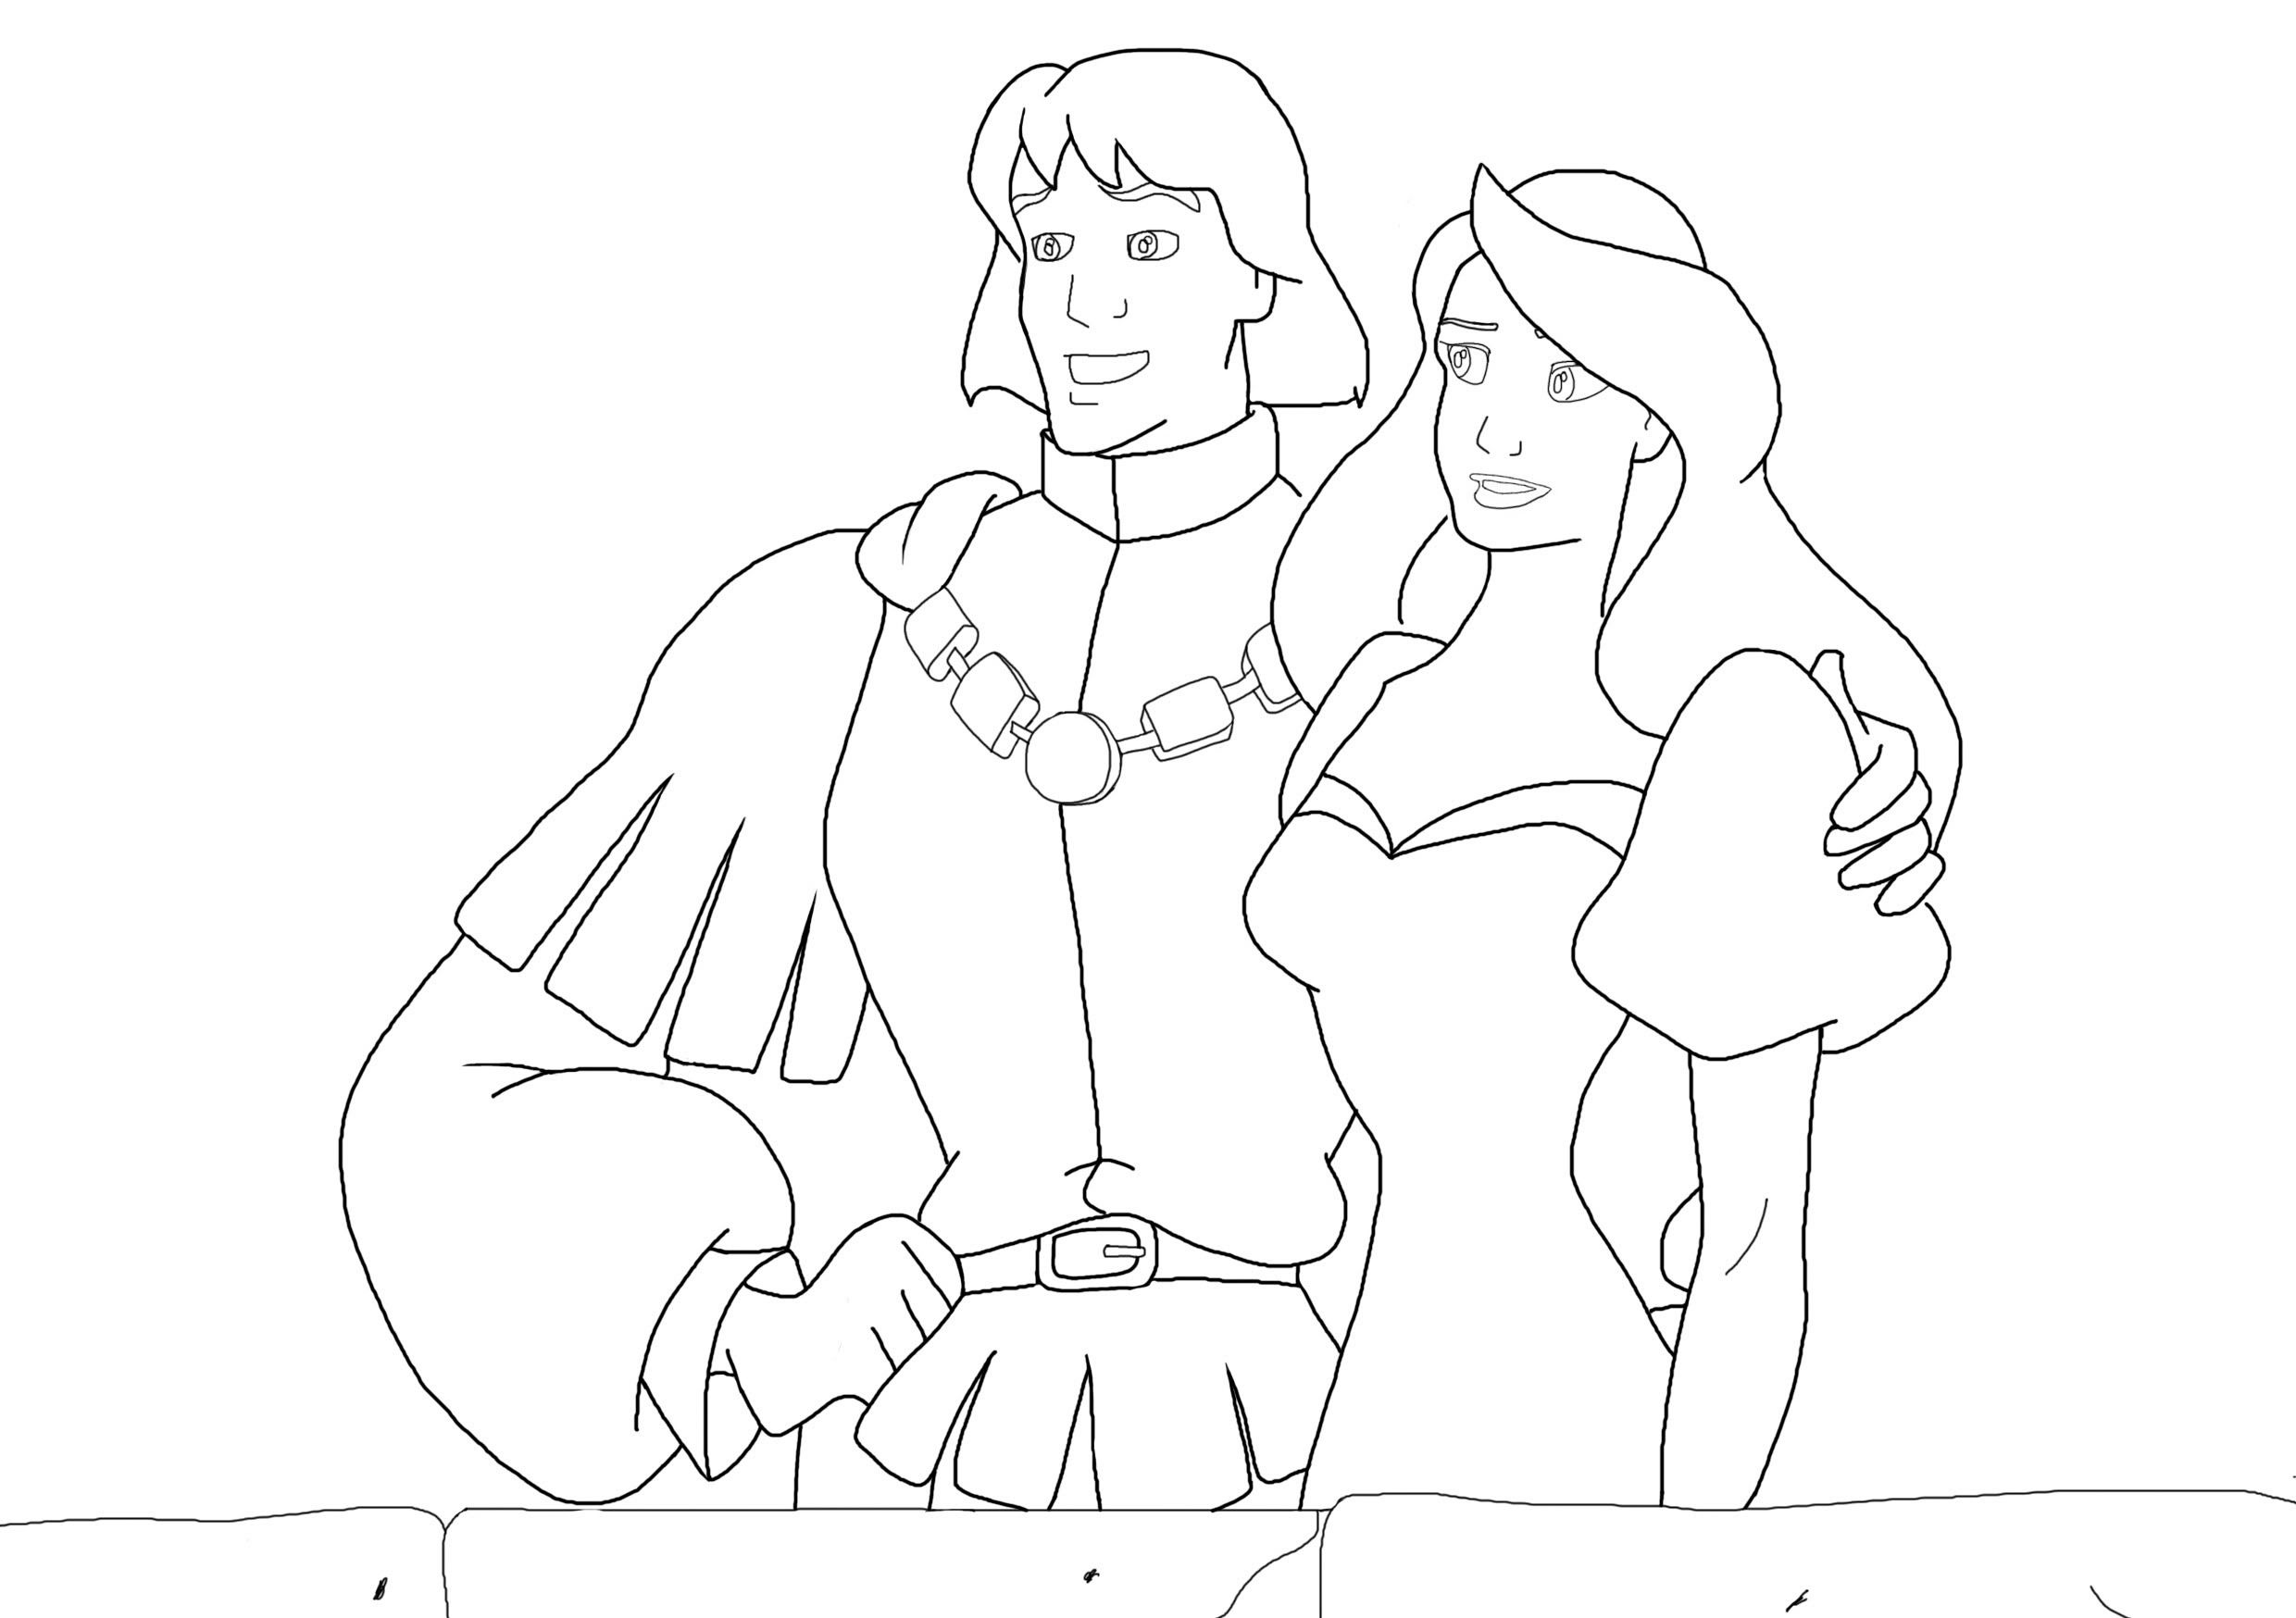 Swan princess coloring pages free - Swan Princess Coloring Pages For Kids And For Adults